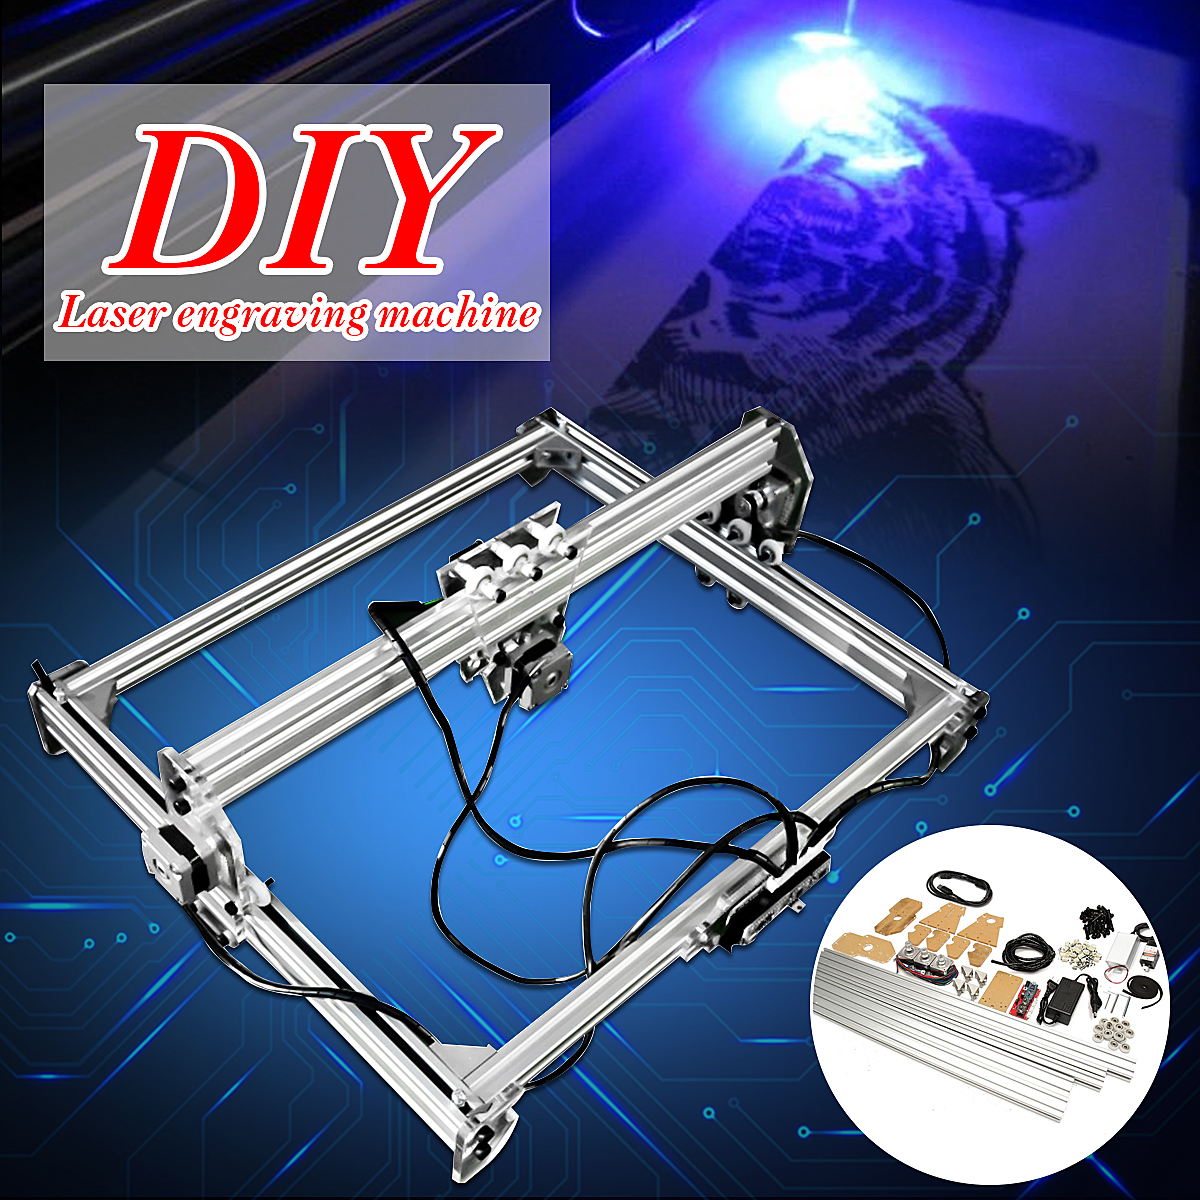 50*65cm Mini 3000MW Blue CNC Laser Engraving Machine 2Axis DC 12V DIY Engraver Desktop Wood Router/Cutter/Printer+ Laser Goggles50*65cm Mini 3000MW Blue CNC Laser Engraving Machine 2Axis DC 12V DIY Engraver Desktop Wood Router/Cutter/Printer+ Laser Goggles